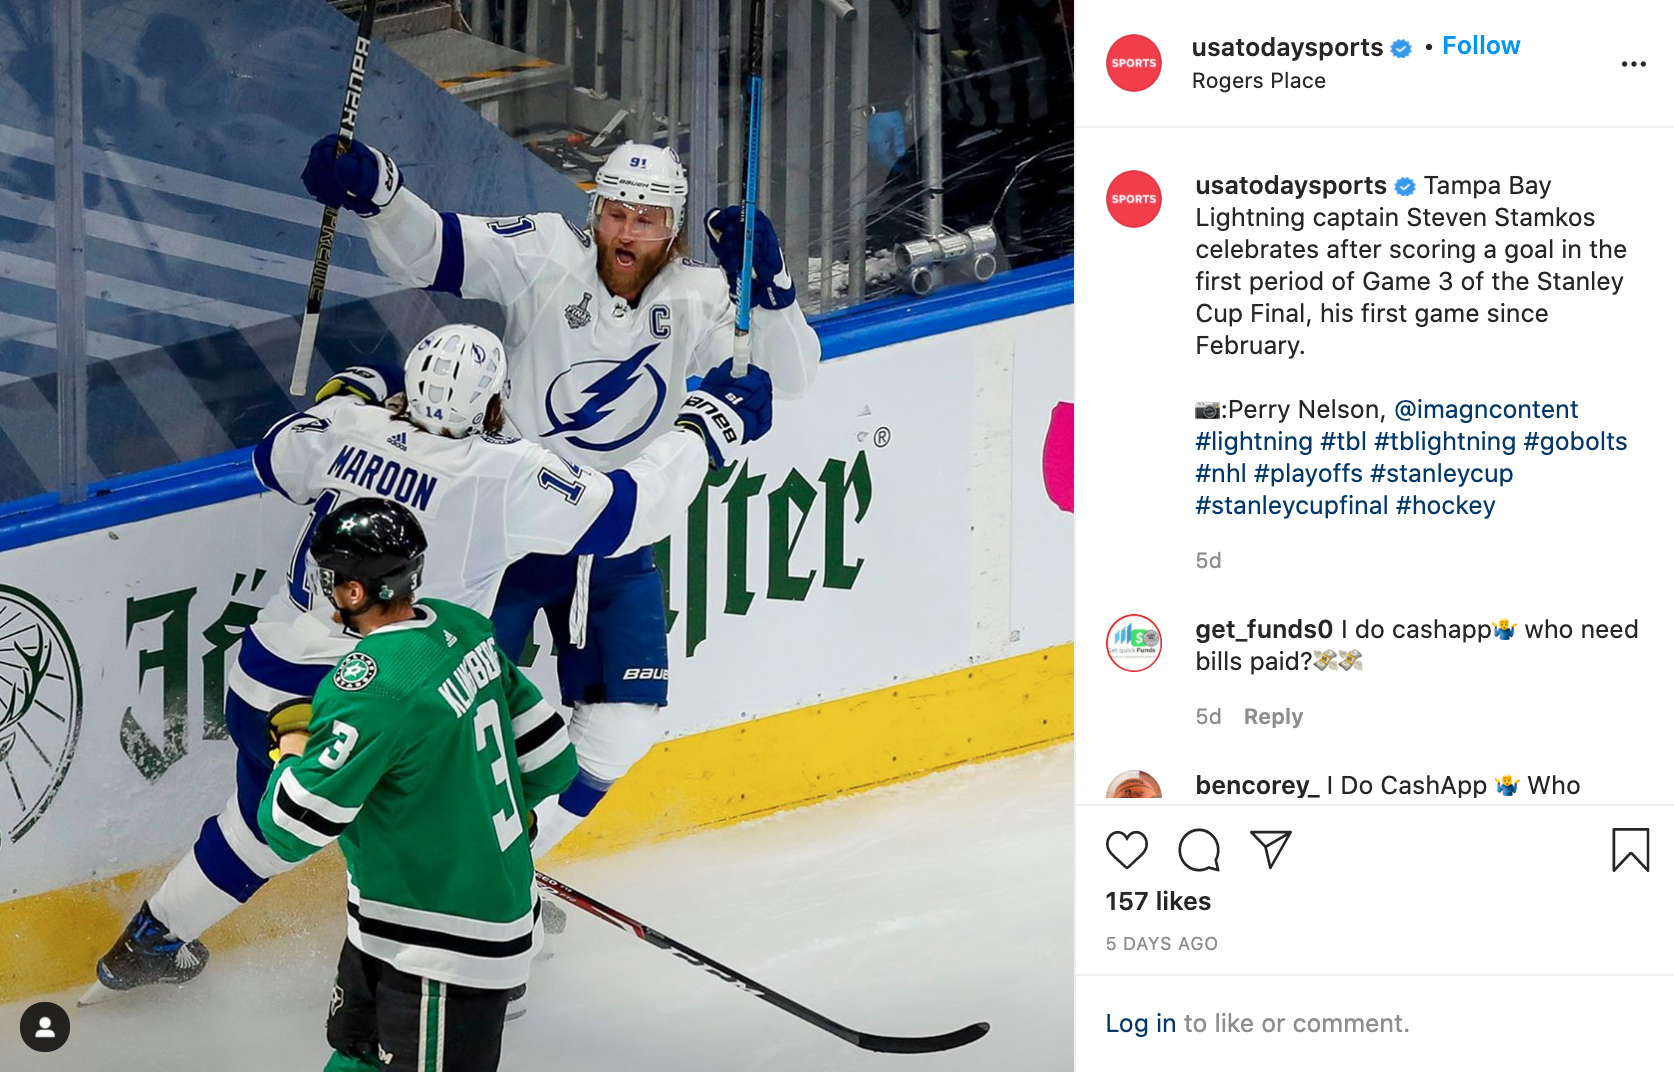 tampa bay lightning insta 3